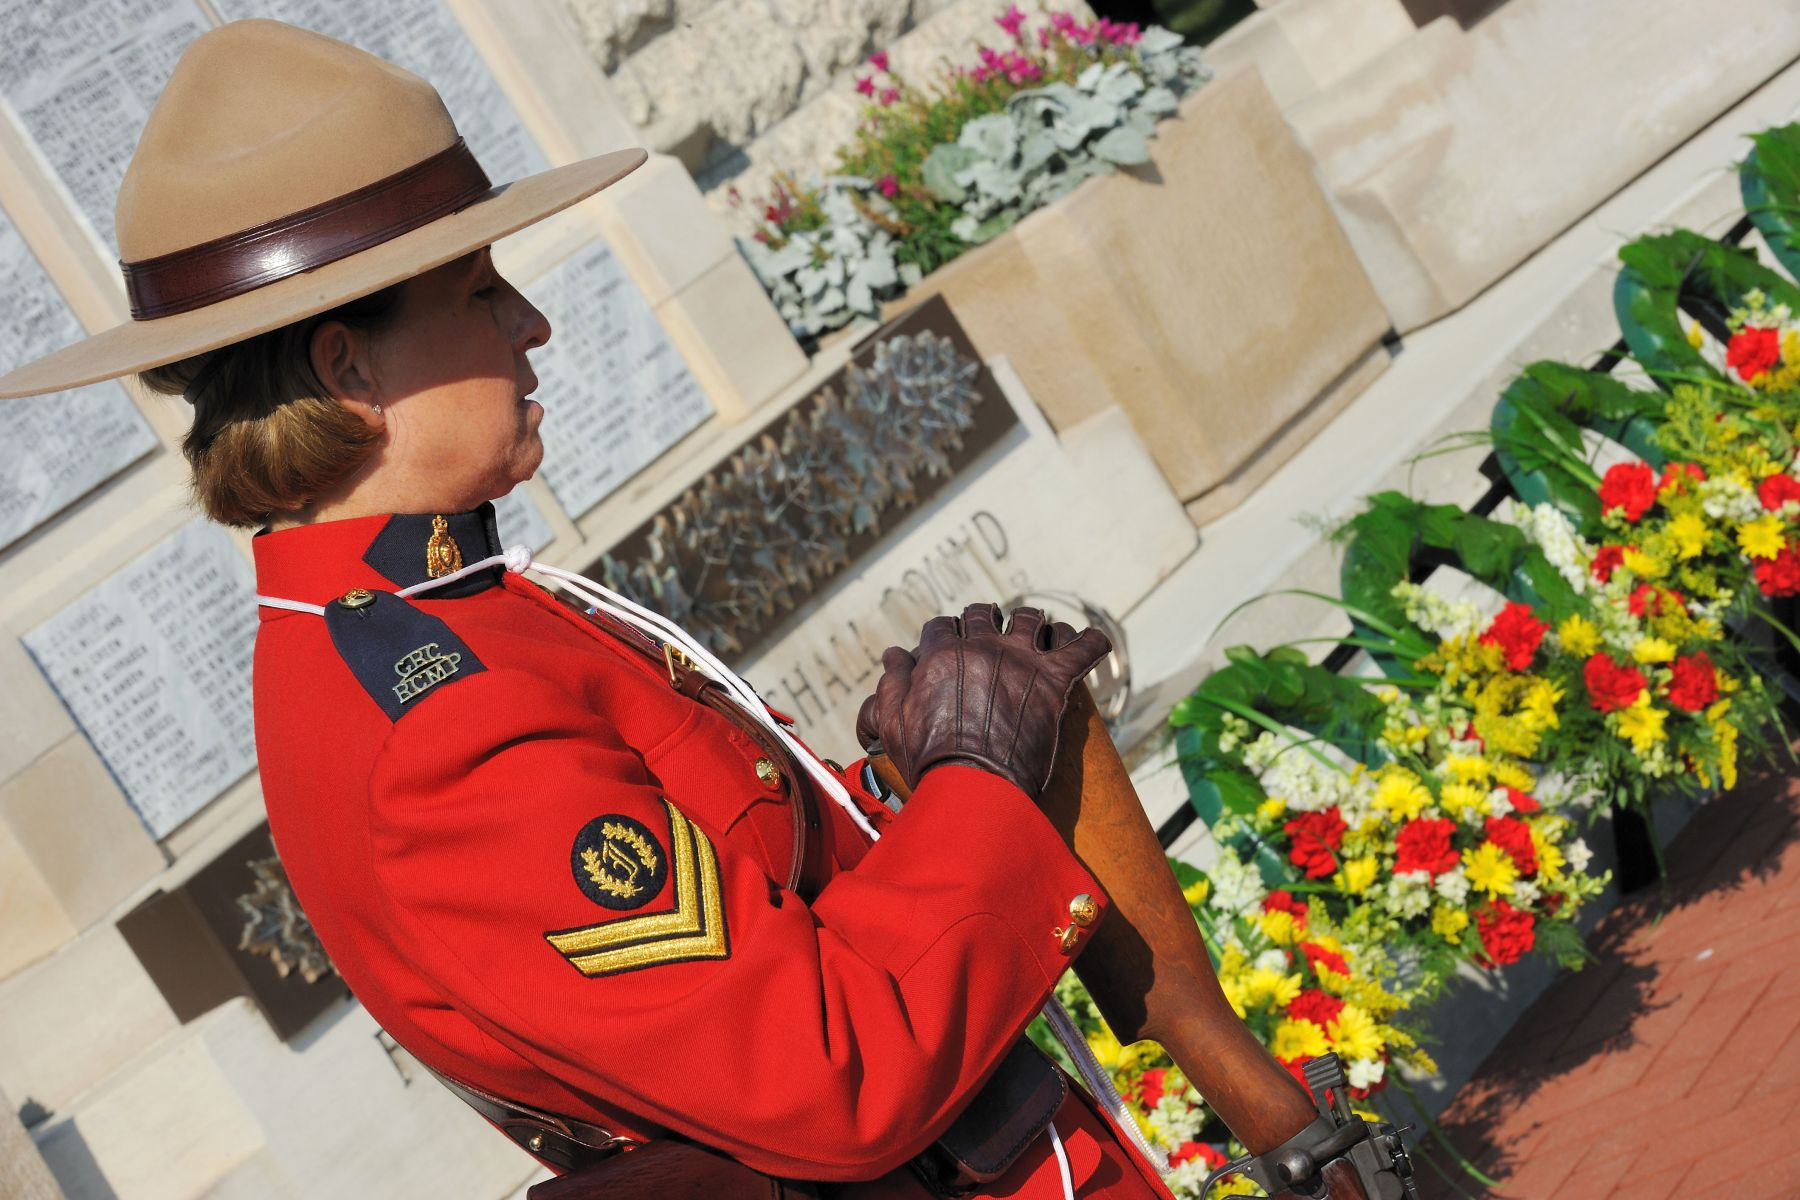 "The ceremony was held on the same day of the 10th anniversary of 9/11. In his address to RCMP members, His Excellency said: ""It is fitting that we have gathered together to mourn these Canadians as we join with others around the world to mark the 10th anniversary of the terrible attacks of September 11, 2001. On that tragic day, police, other emergency services personnel and ordinary people sacrificed themselves to save the lives of others. Members of the RCMP were ready to lend a hand to their brothers and sisters in uniform, as well as to those US citizens who were stranded on this side of the border."""